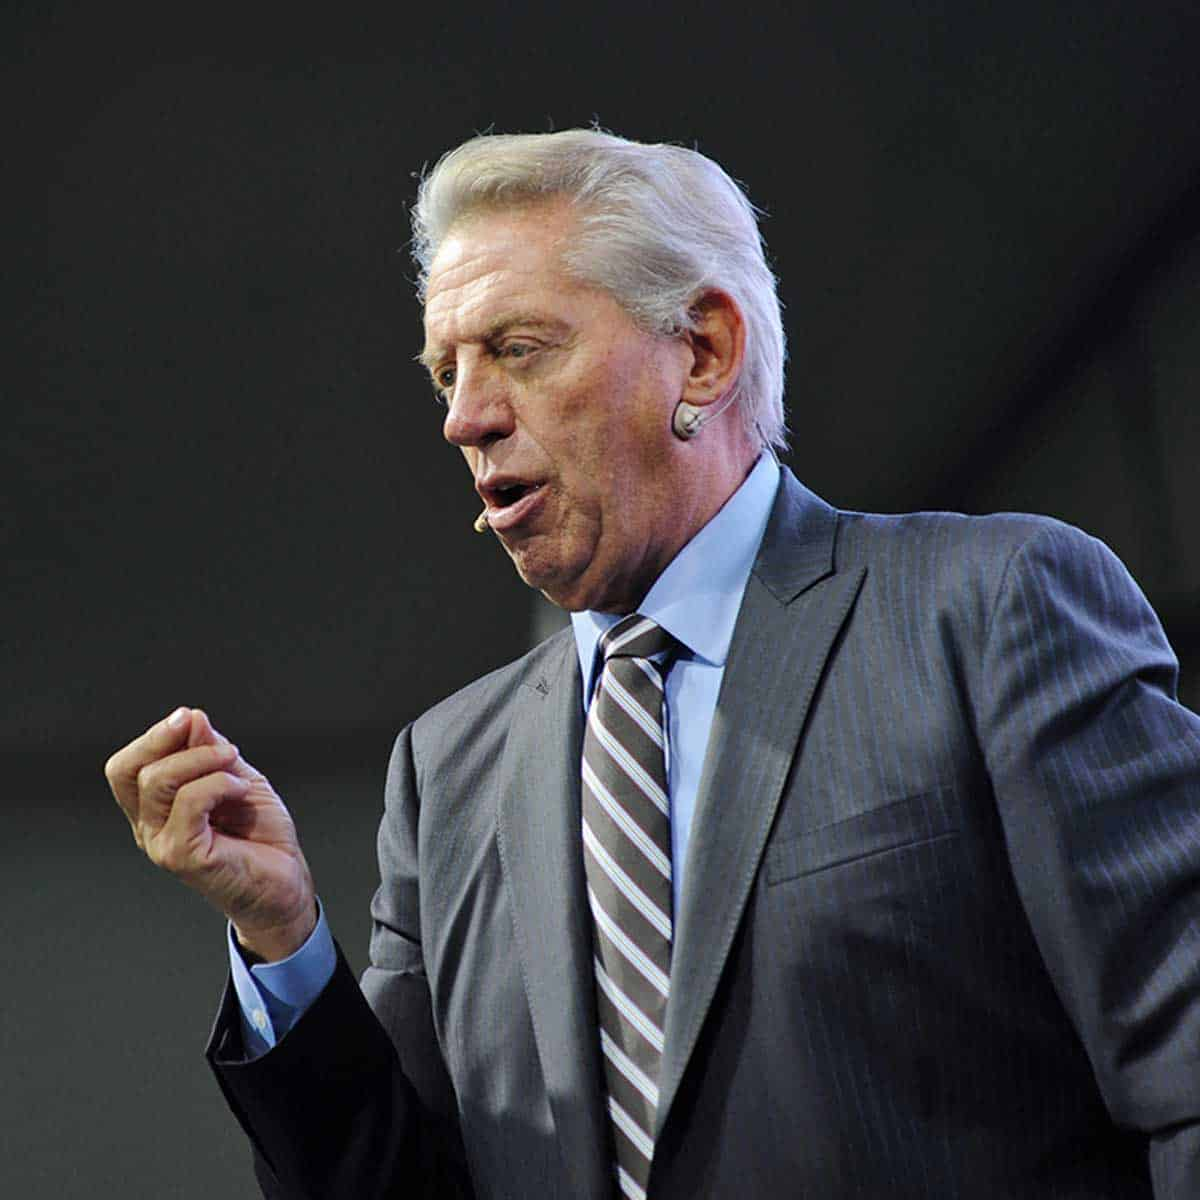 John Maxwell - business coach